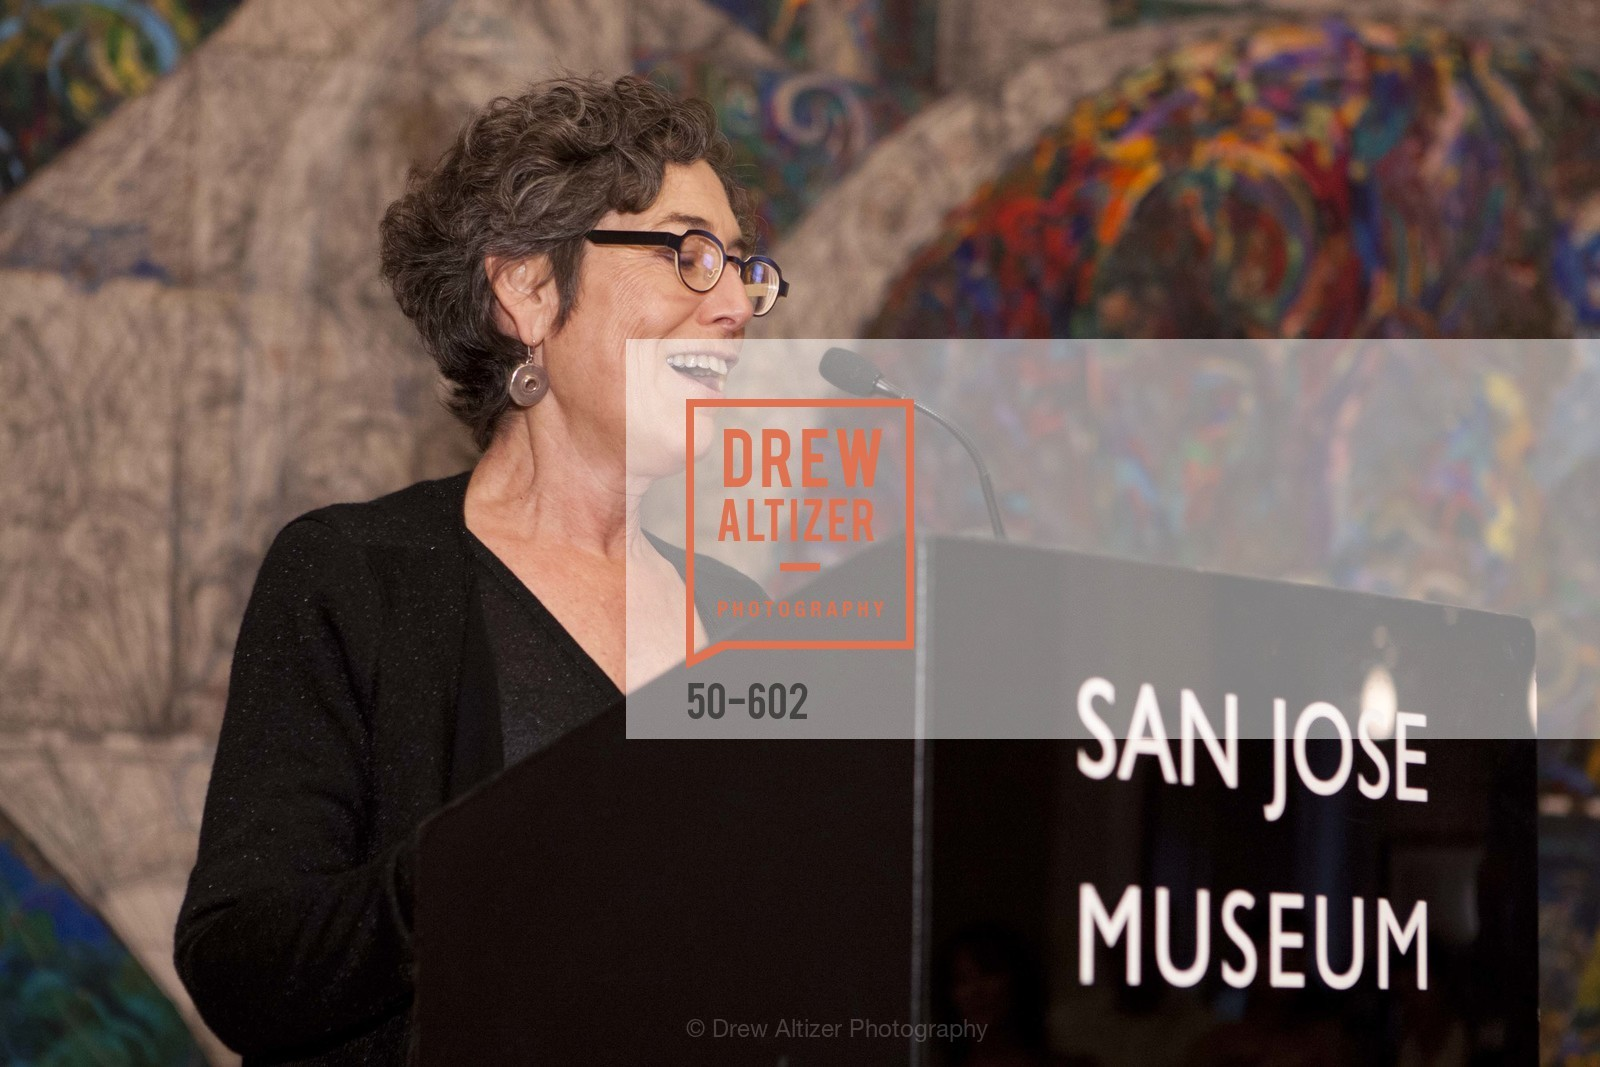 Susan Krane, SAN JOSE MUSEUM OF ART Fall Reception Opening, US, October 9th, 2014,Drew Altizer, Drew Altizer Photography, full-service event agency, private events, San Francisco photographer, photographer California